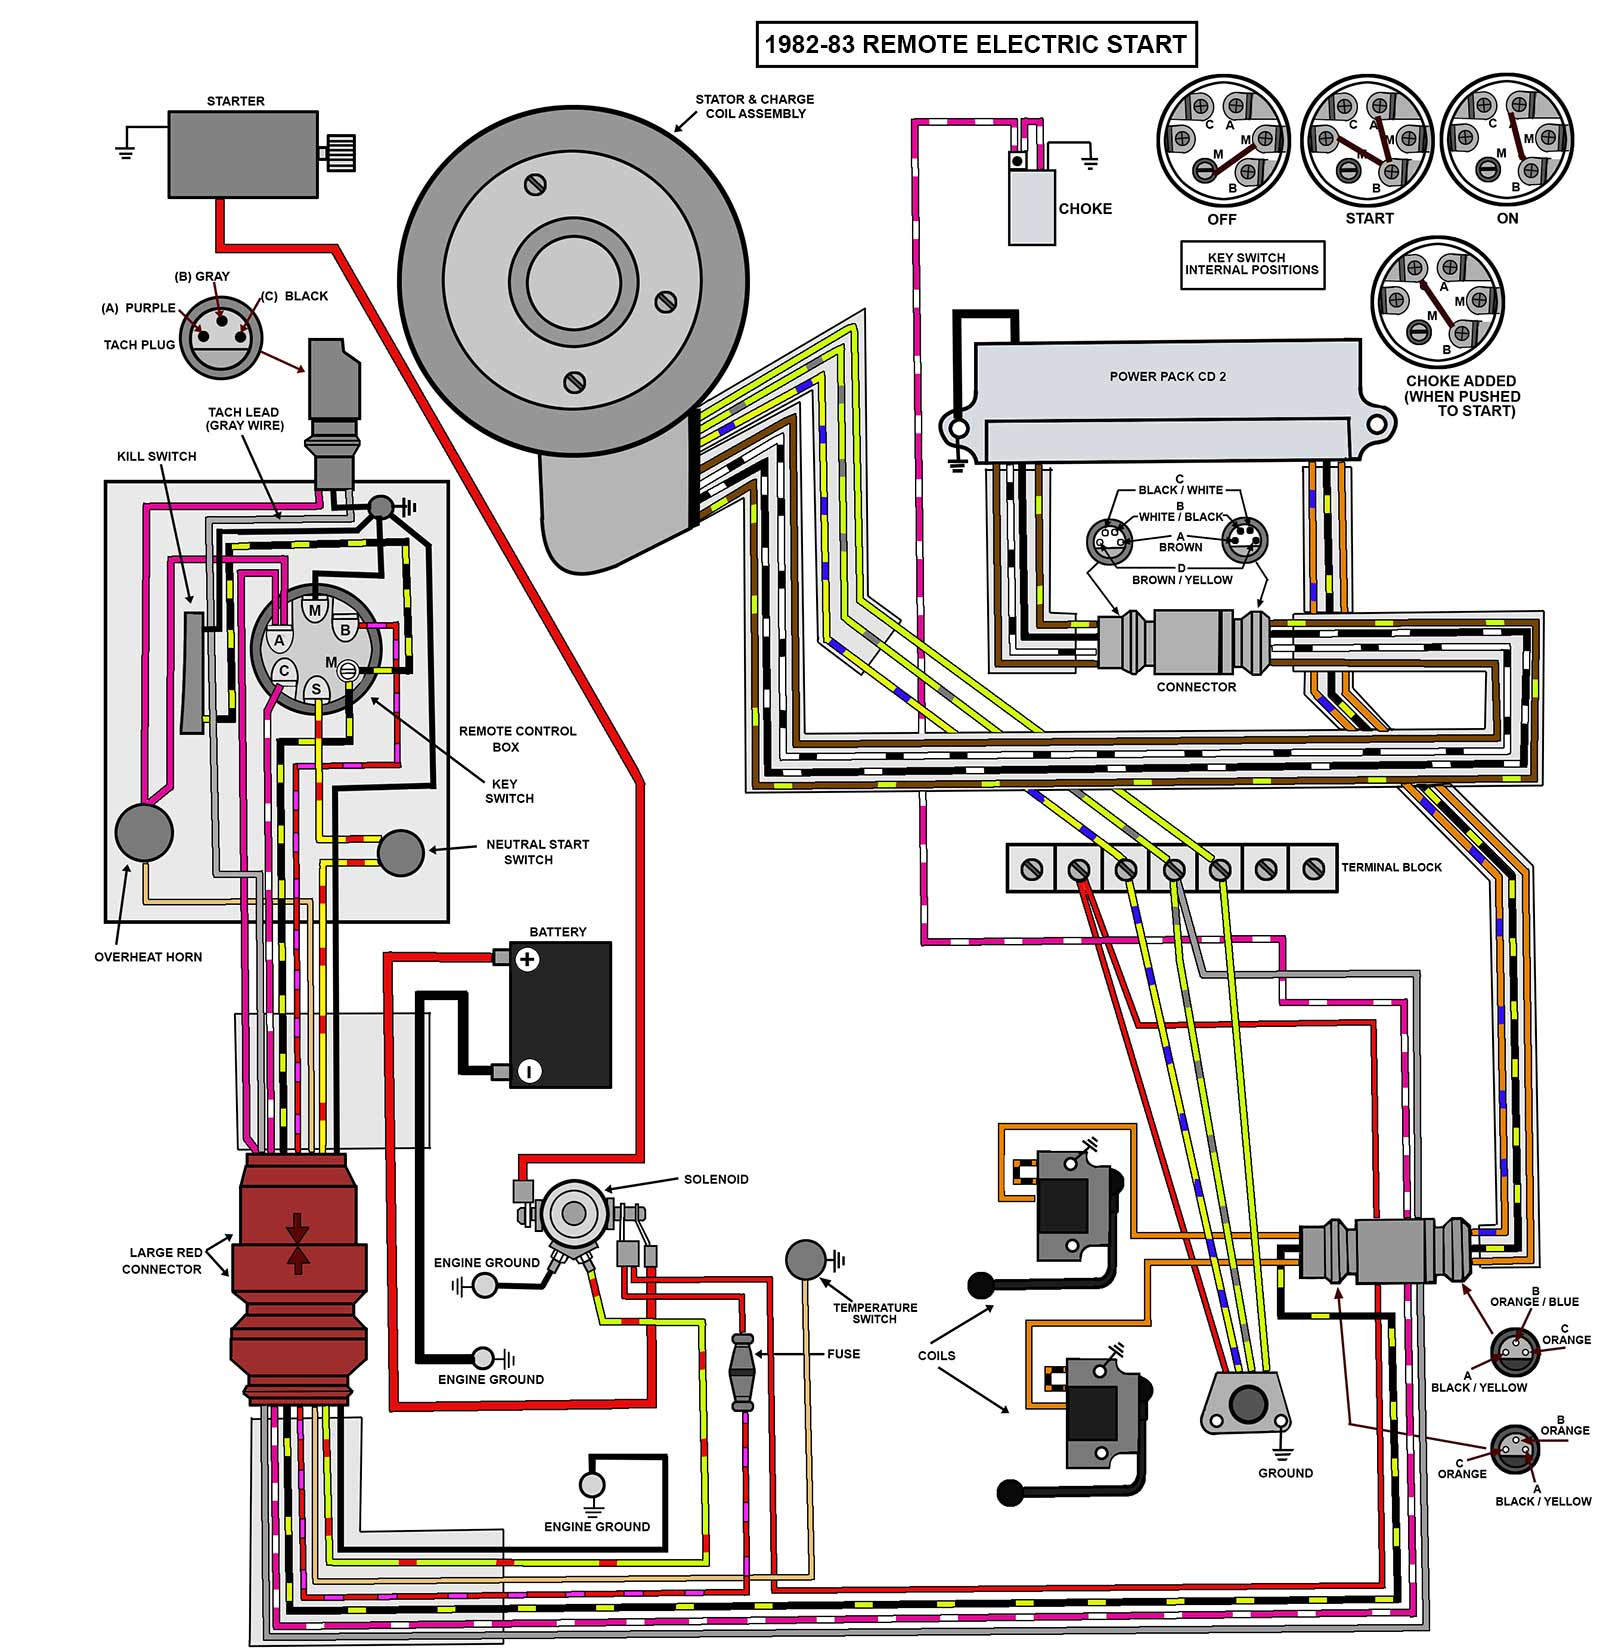 25_35_82 83_elec remote hp wiring diagram wiring harness diagram \u2022 wiring diagrams j Yamaha Outboard Logo at readyjetset.co